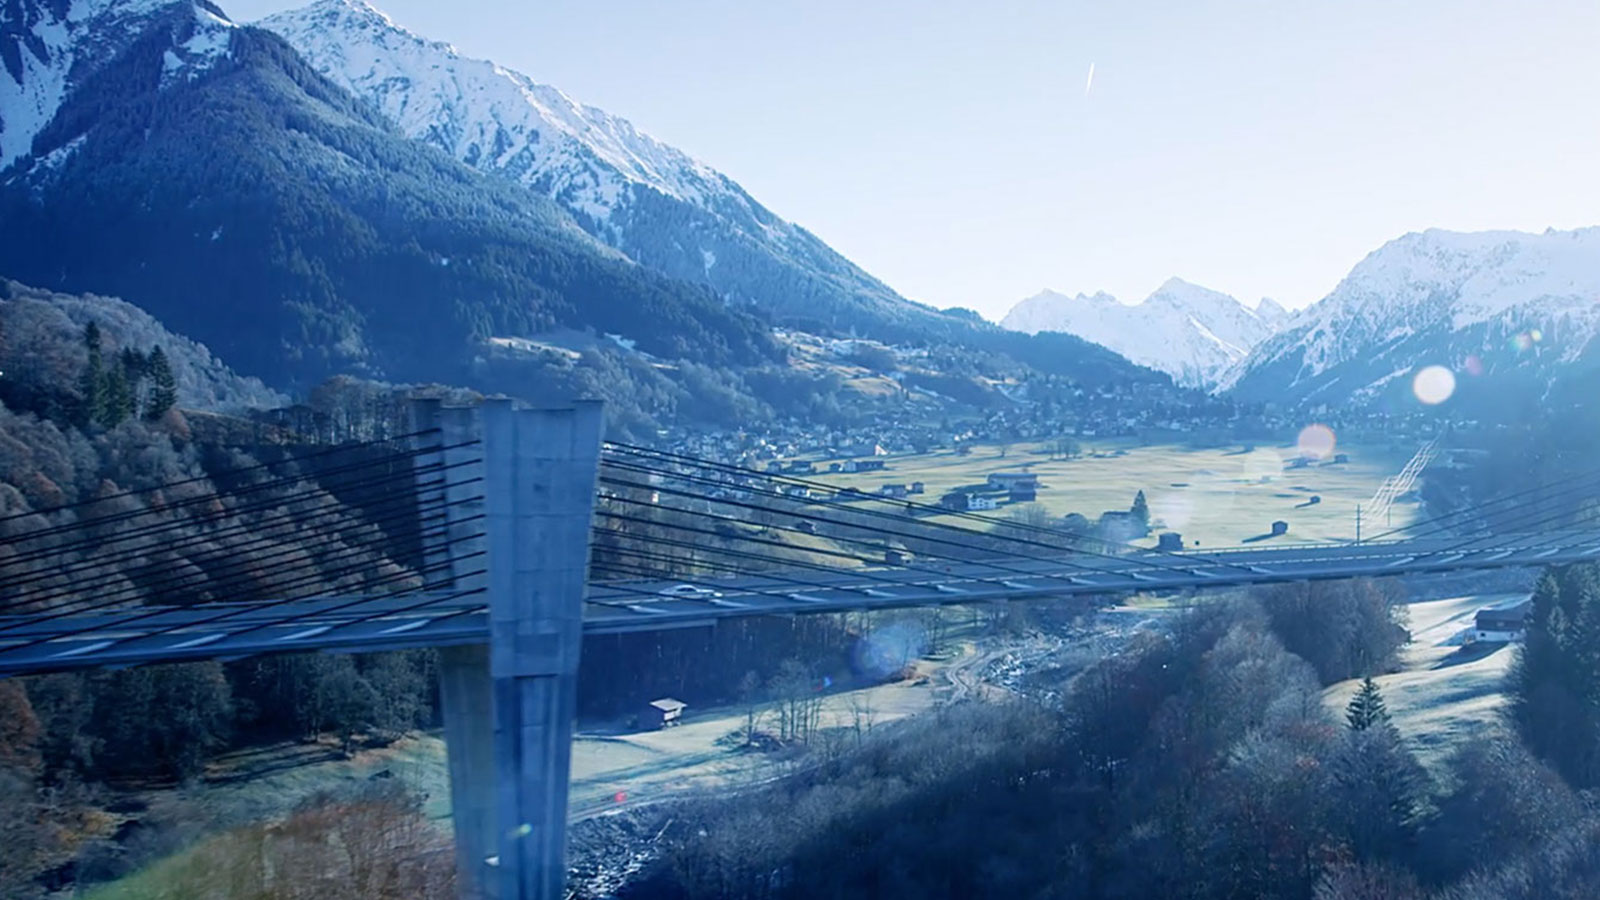 Video still of mountainous area, with bridge in the foreground.